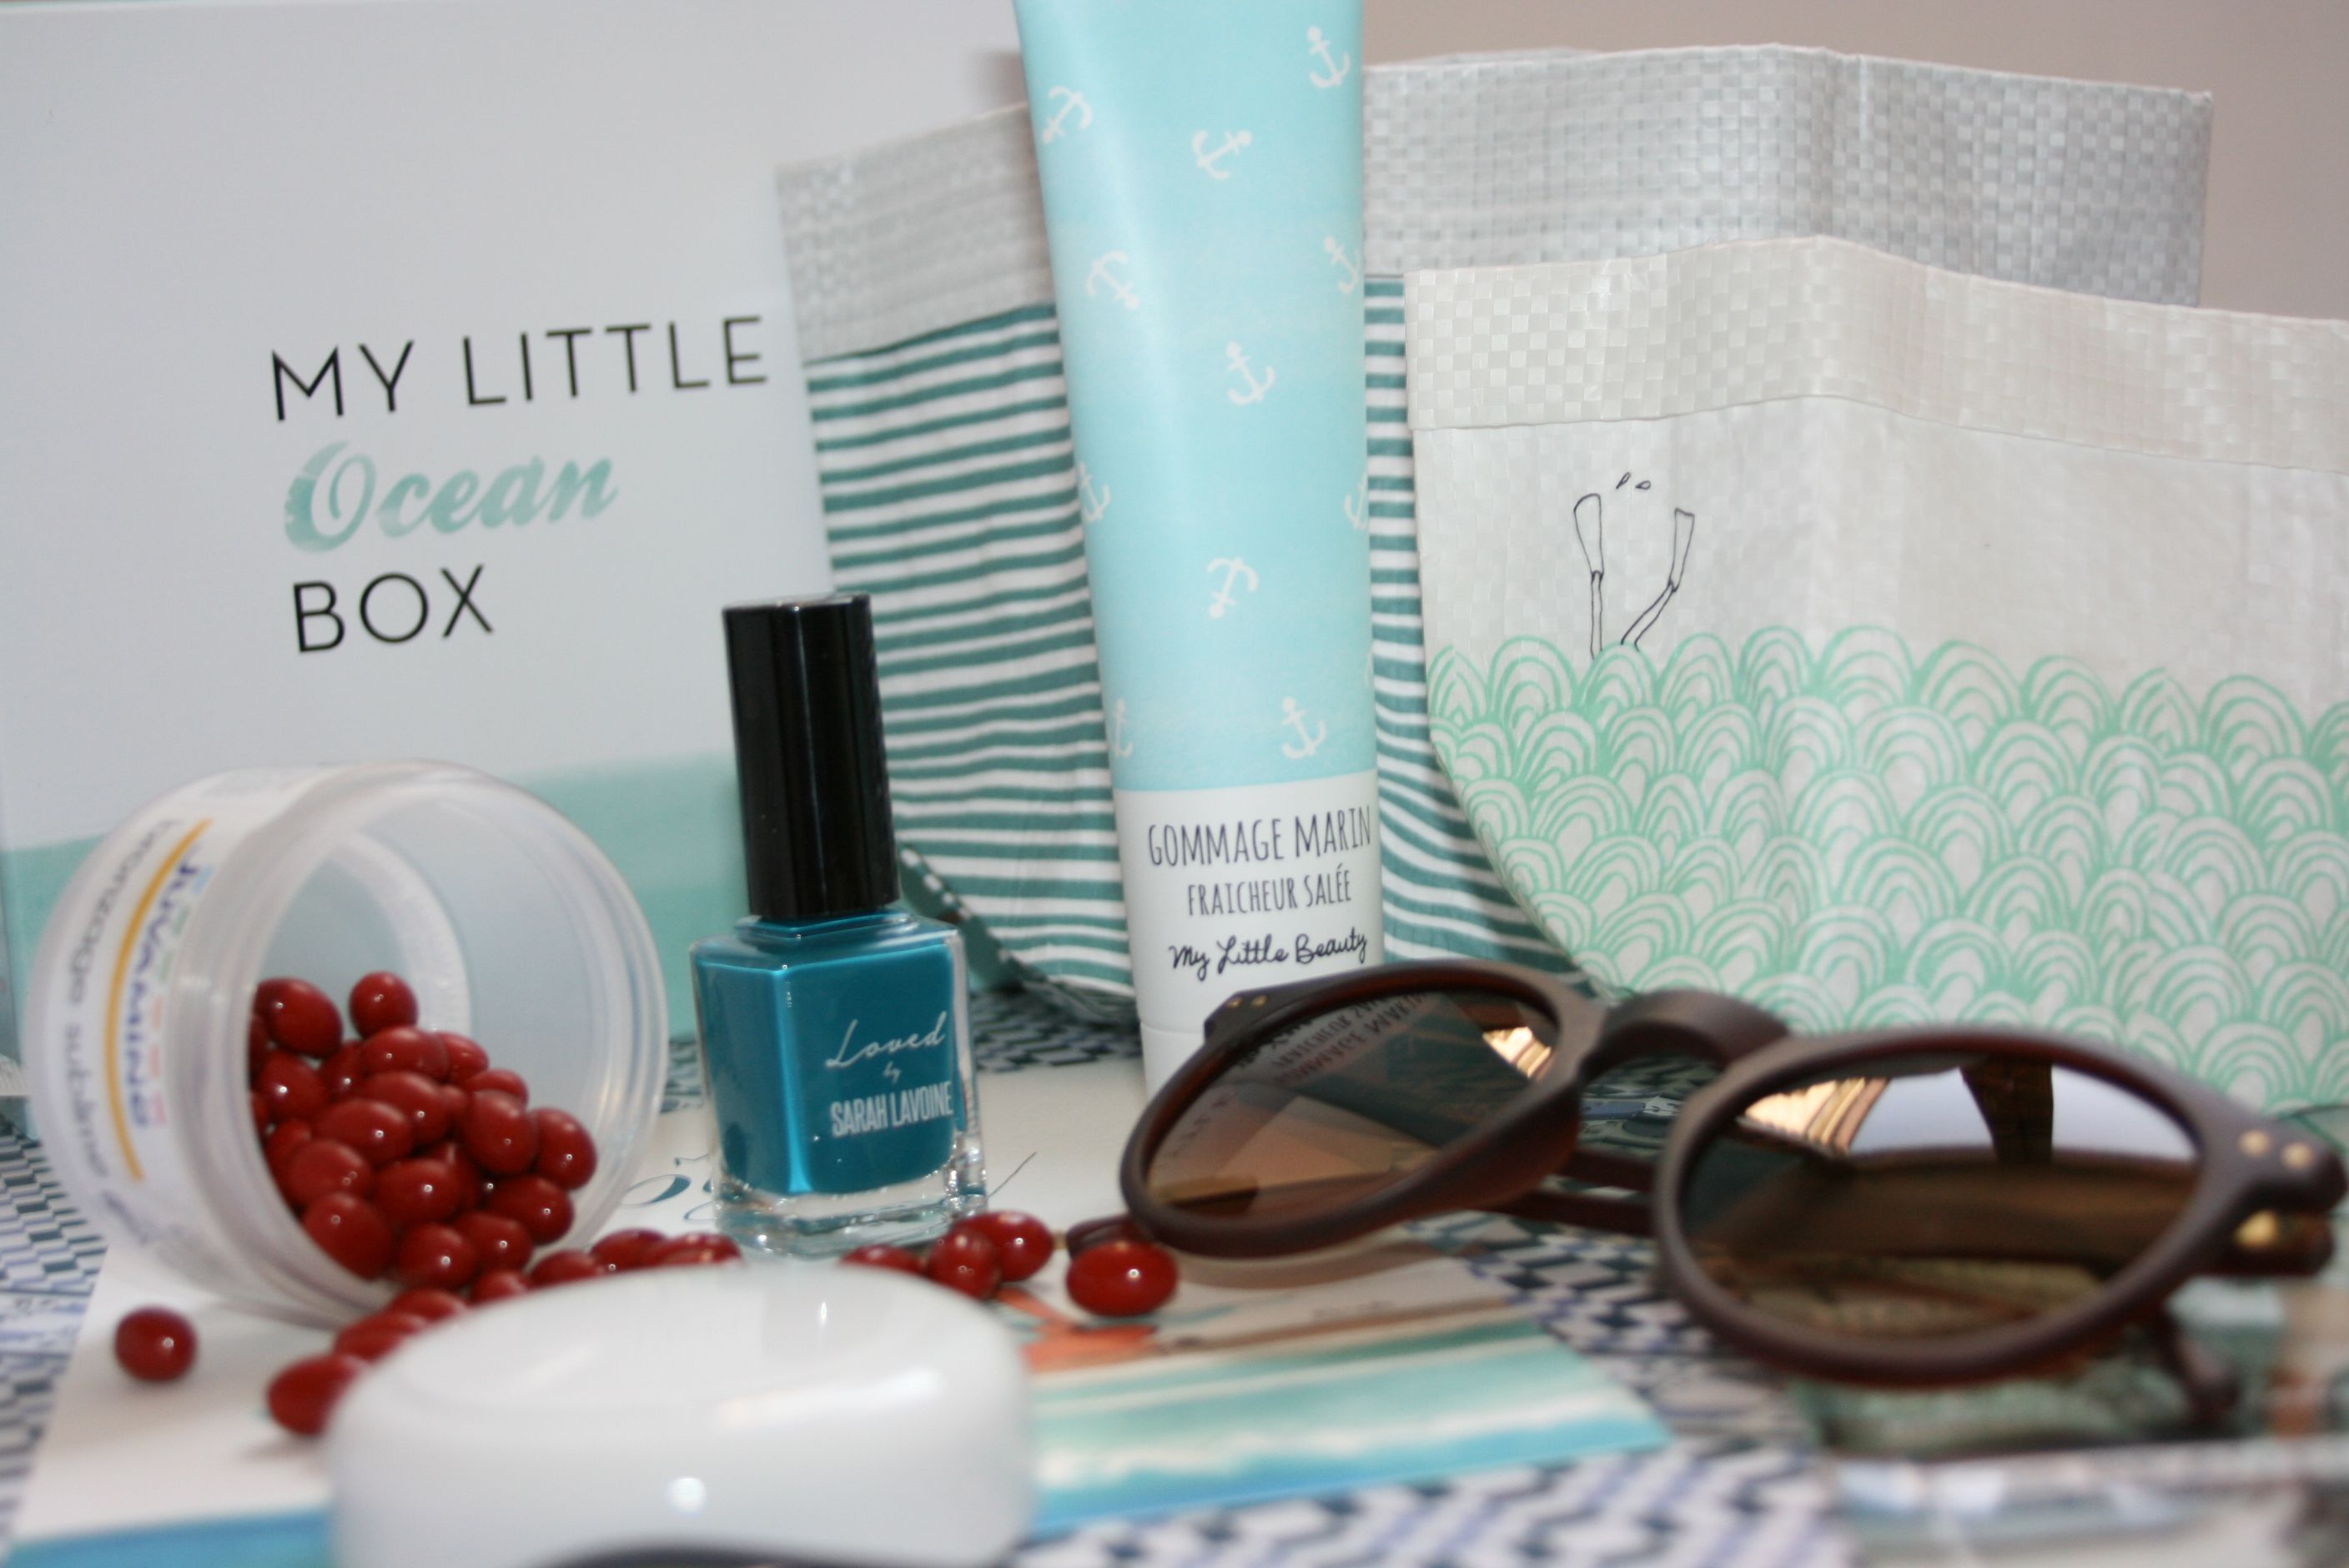 My Little Ocean Box : la box qui aspire aux vacances